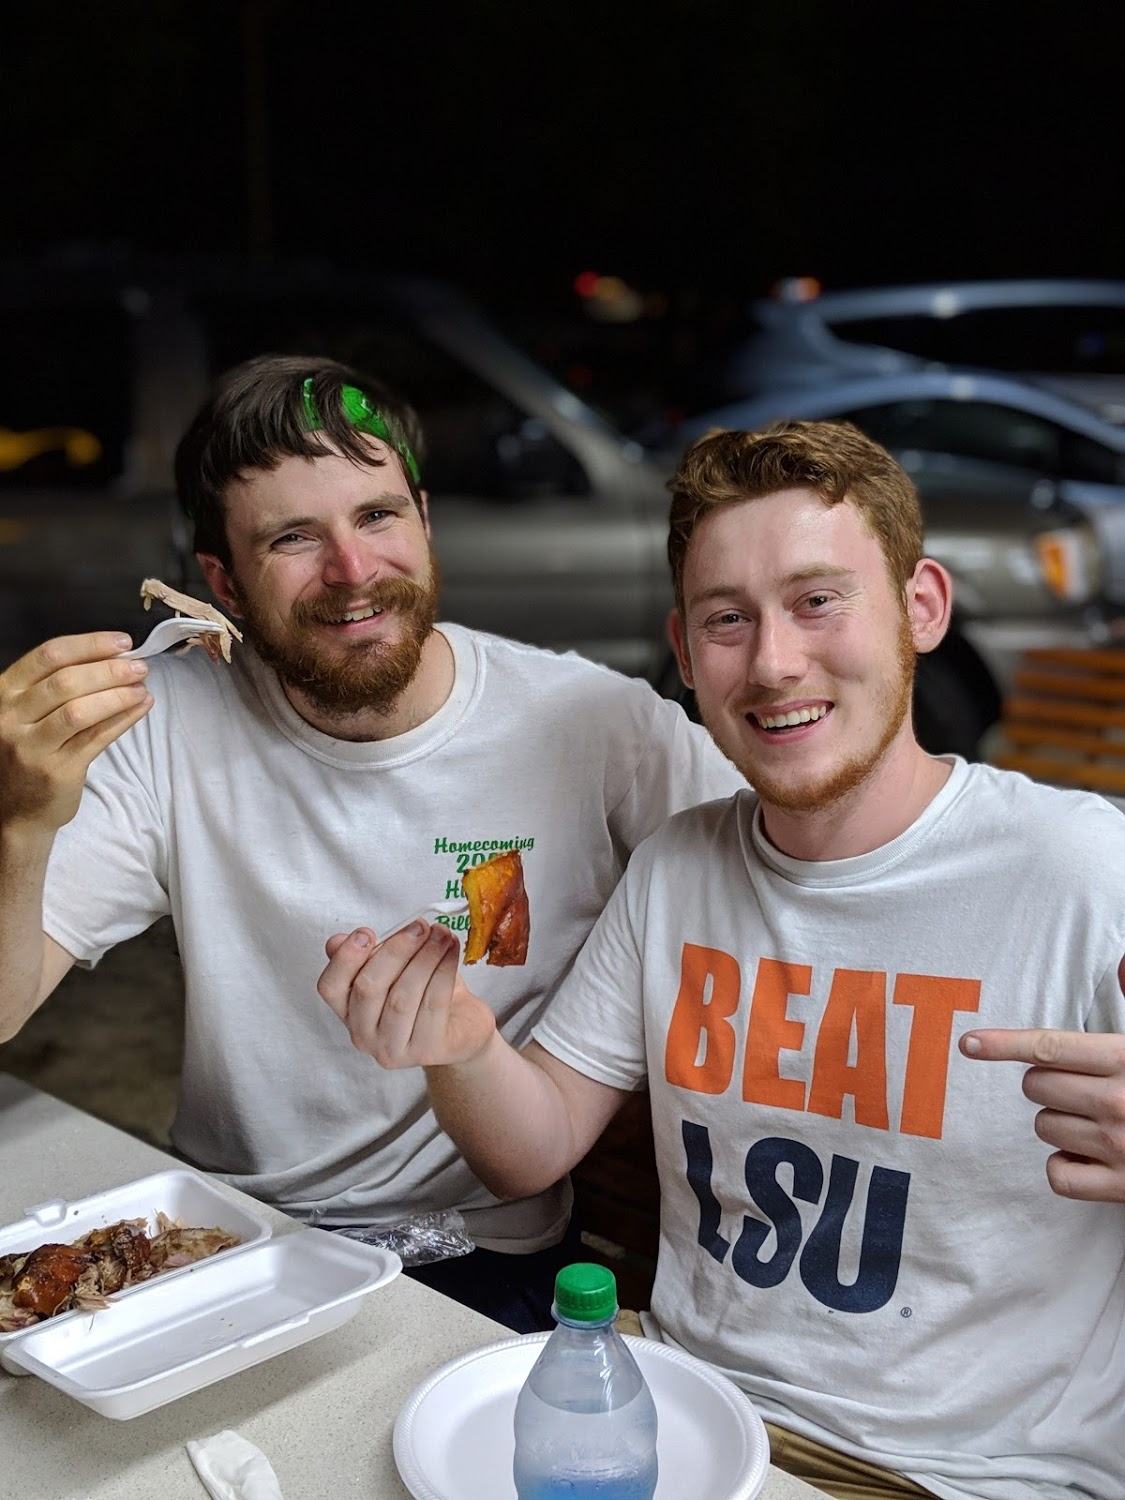 JT Mercer and Ben Gourley tried some pulled pork from Bebos. They LOVED it!!